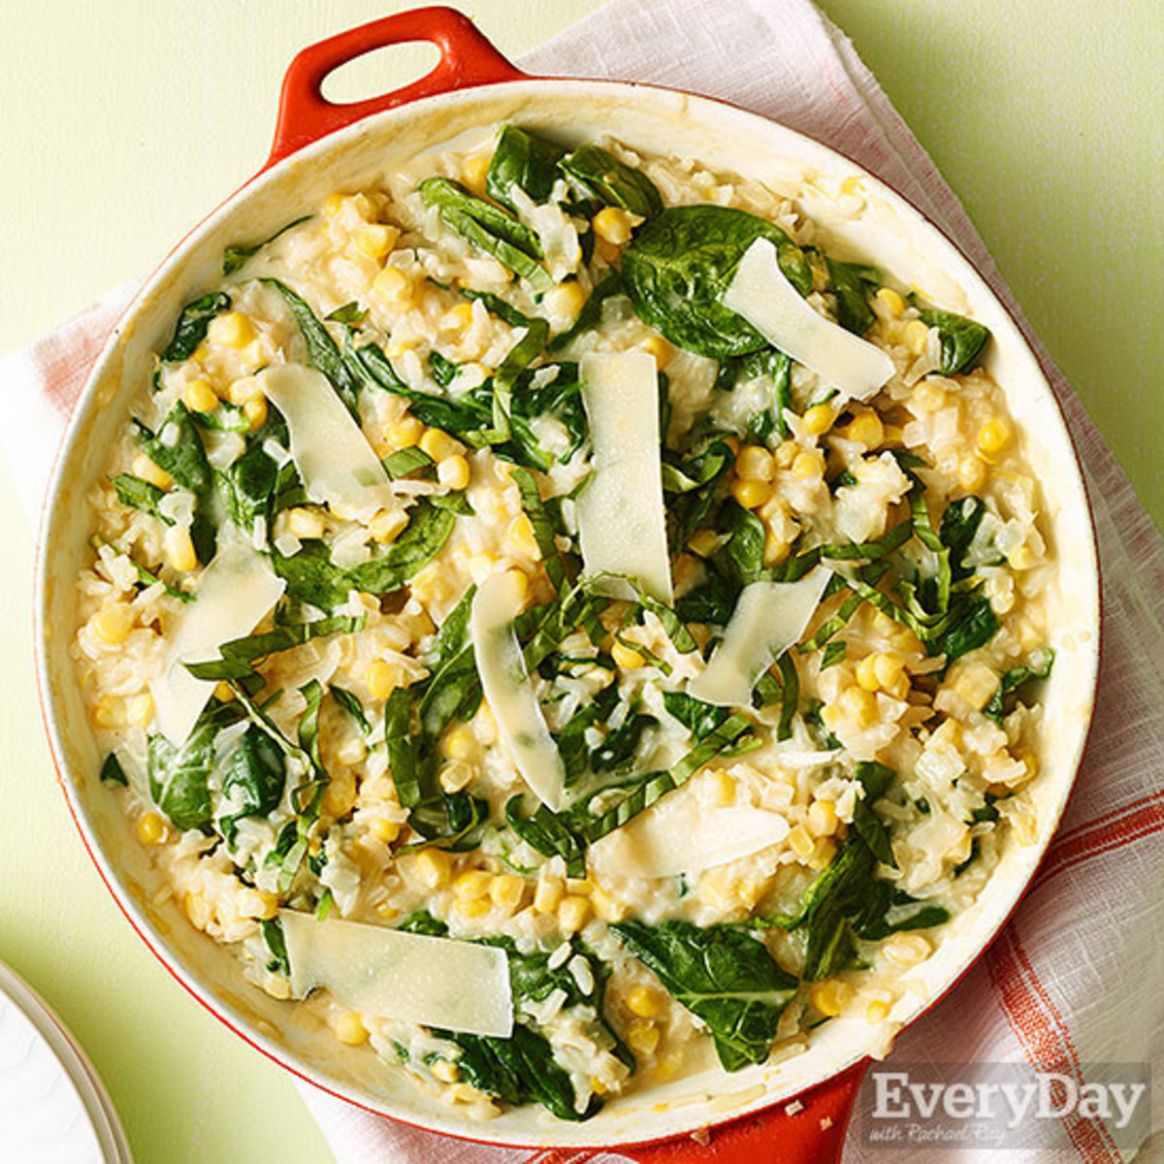 Our Favorite Vegetarian Recipes for Summer - Rachael Ray In Season